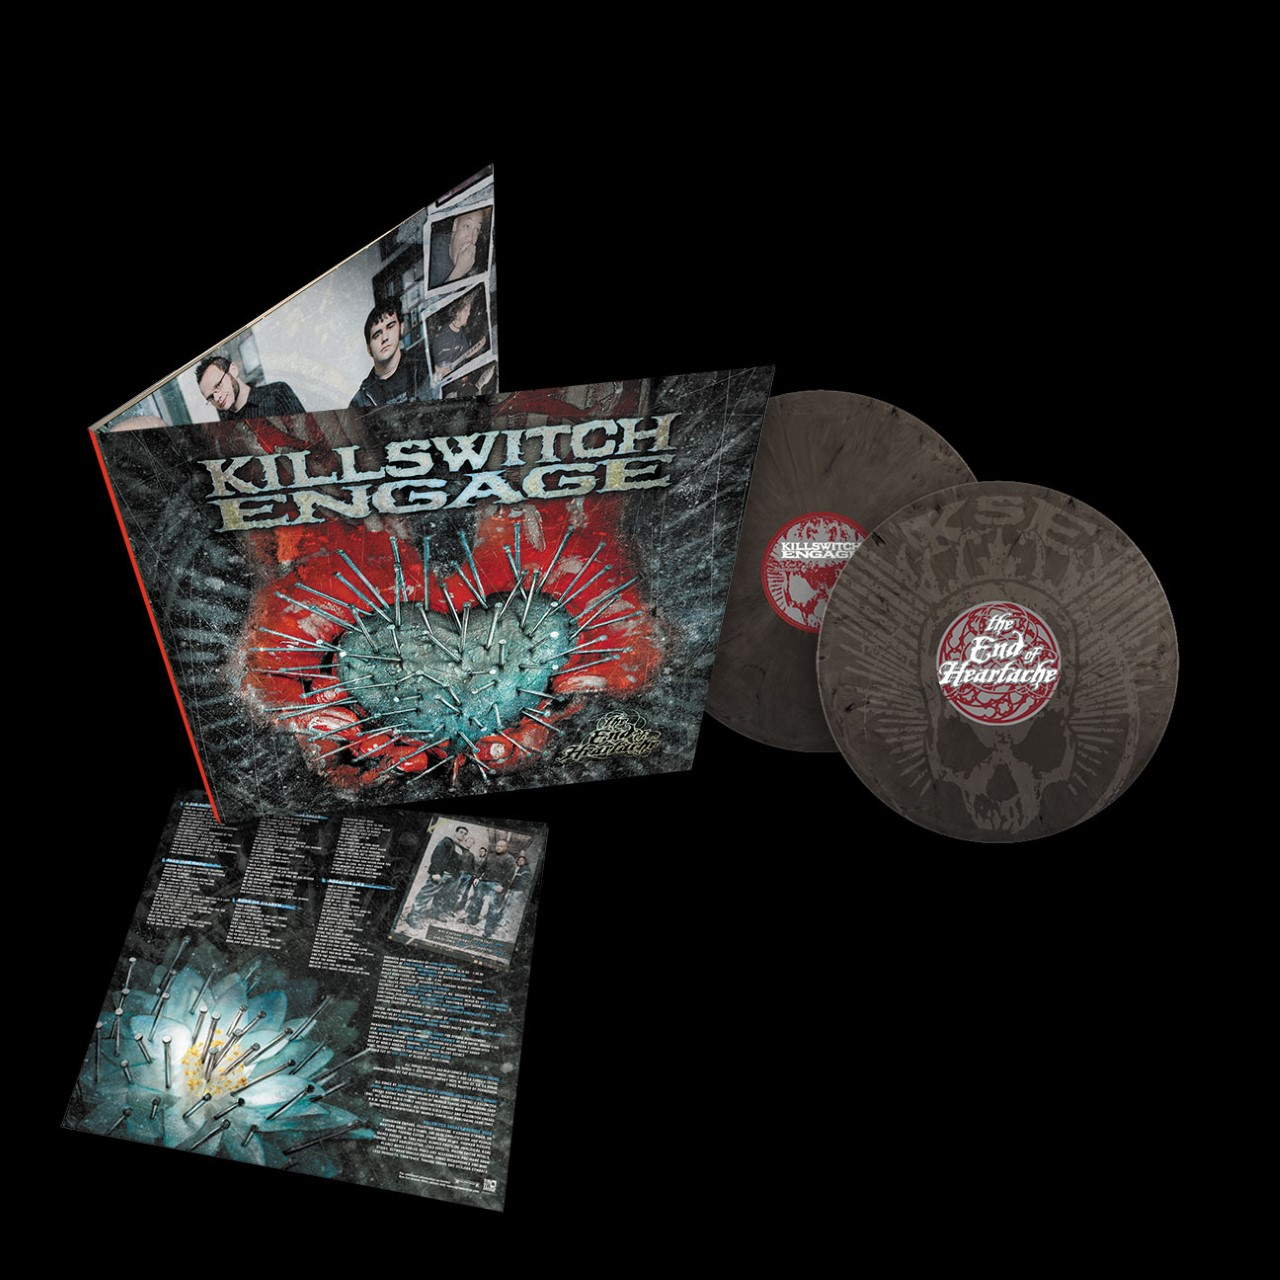 Killswitch Engage - The End of Heartache Limited Edition Silver and Black Swirl Vinyl 2LP + Etched D-Side